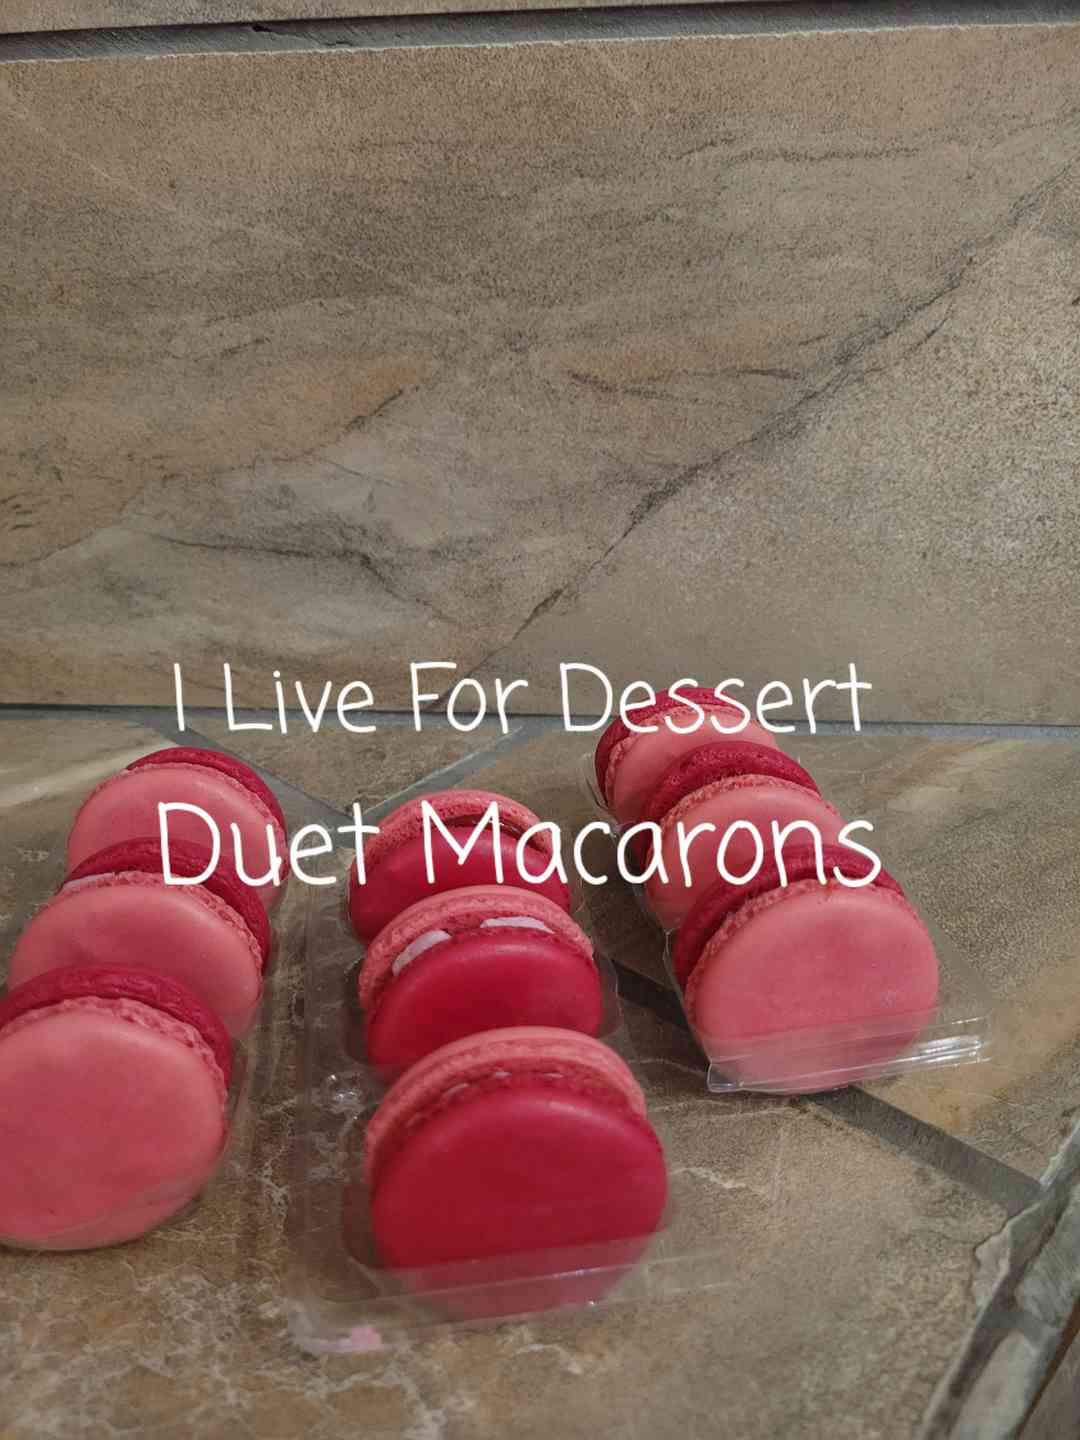 Duet Macarons 3 Count DF/ GF 3 Day Notice